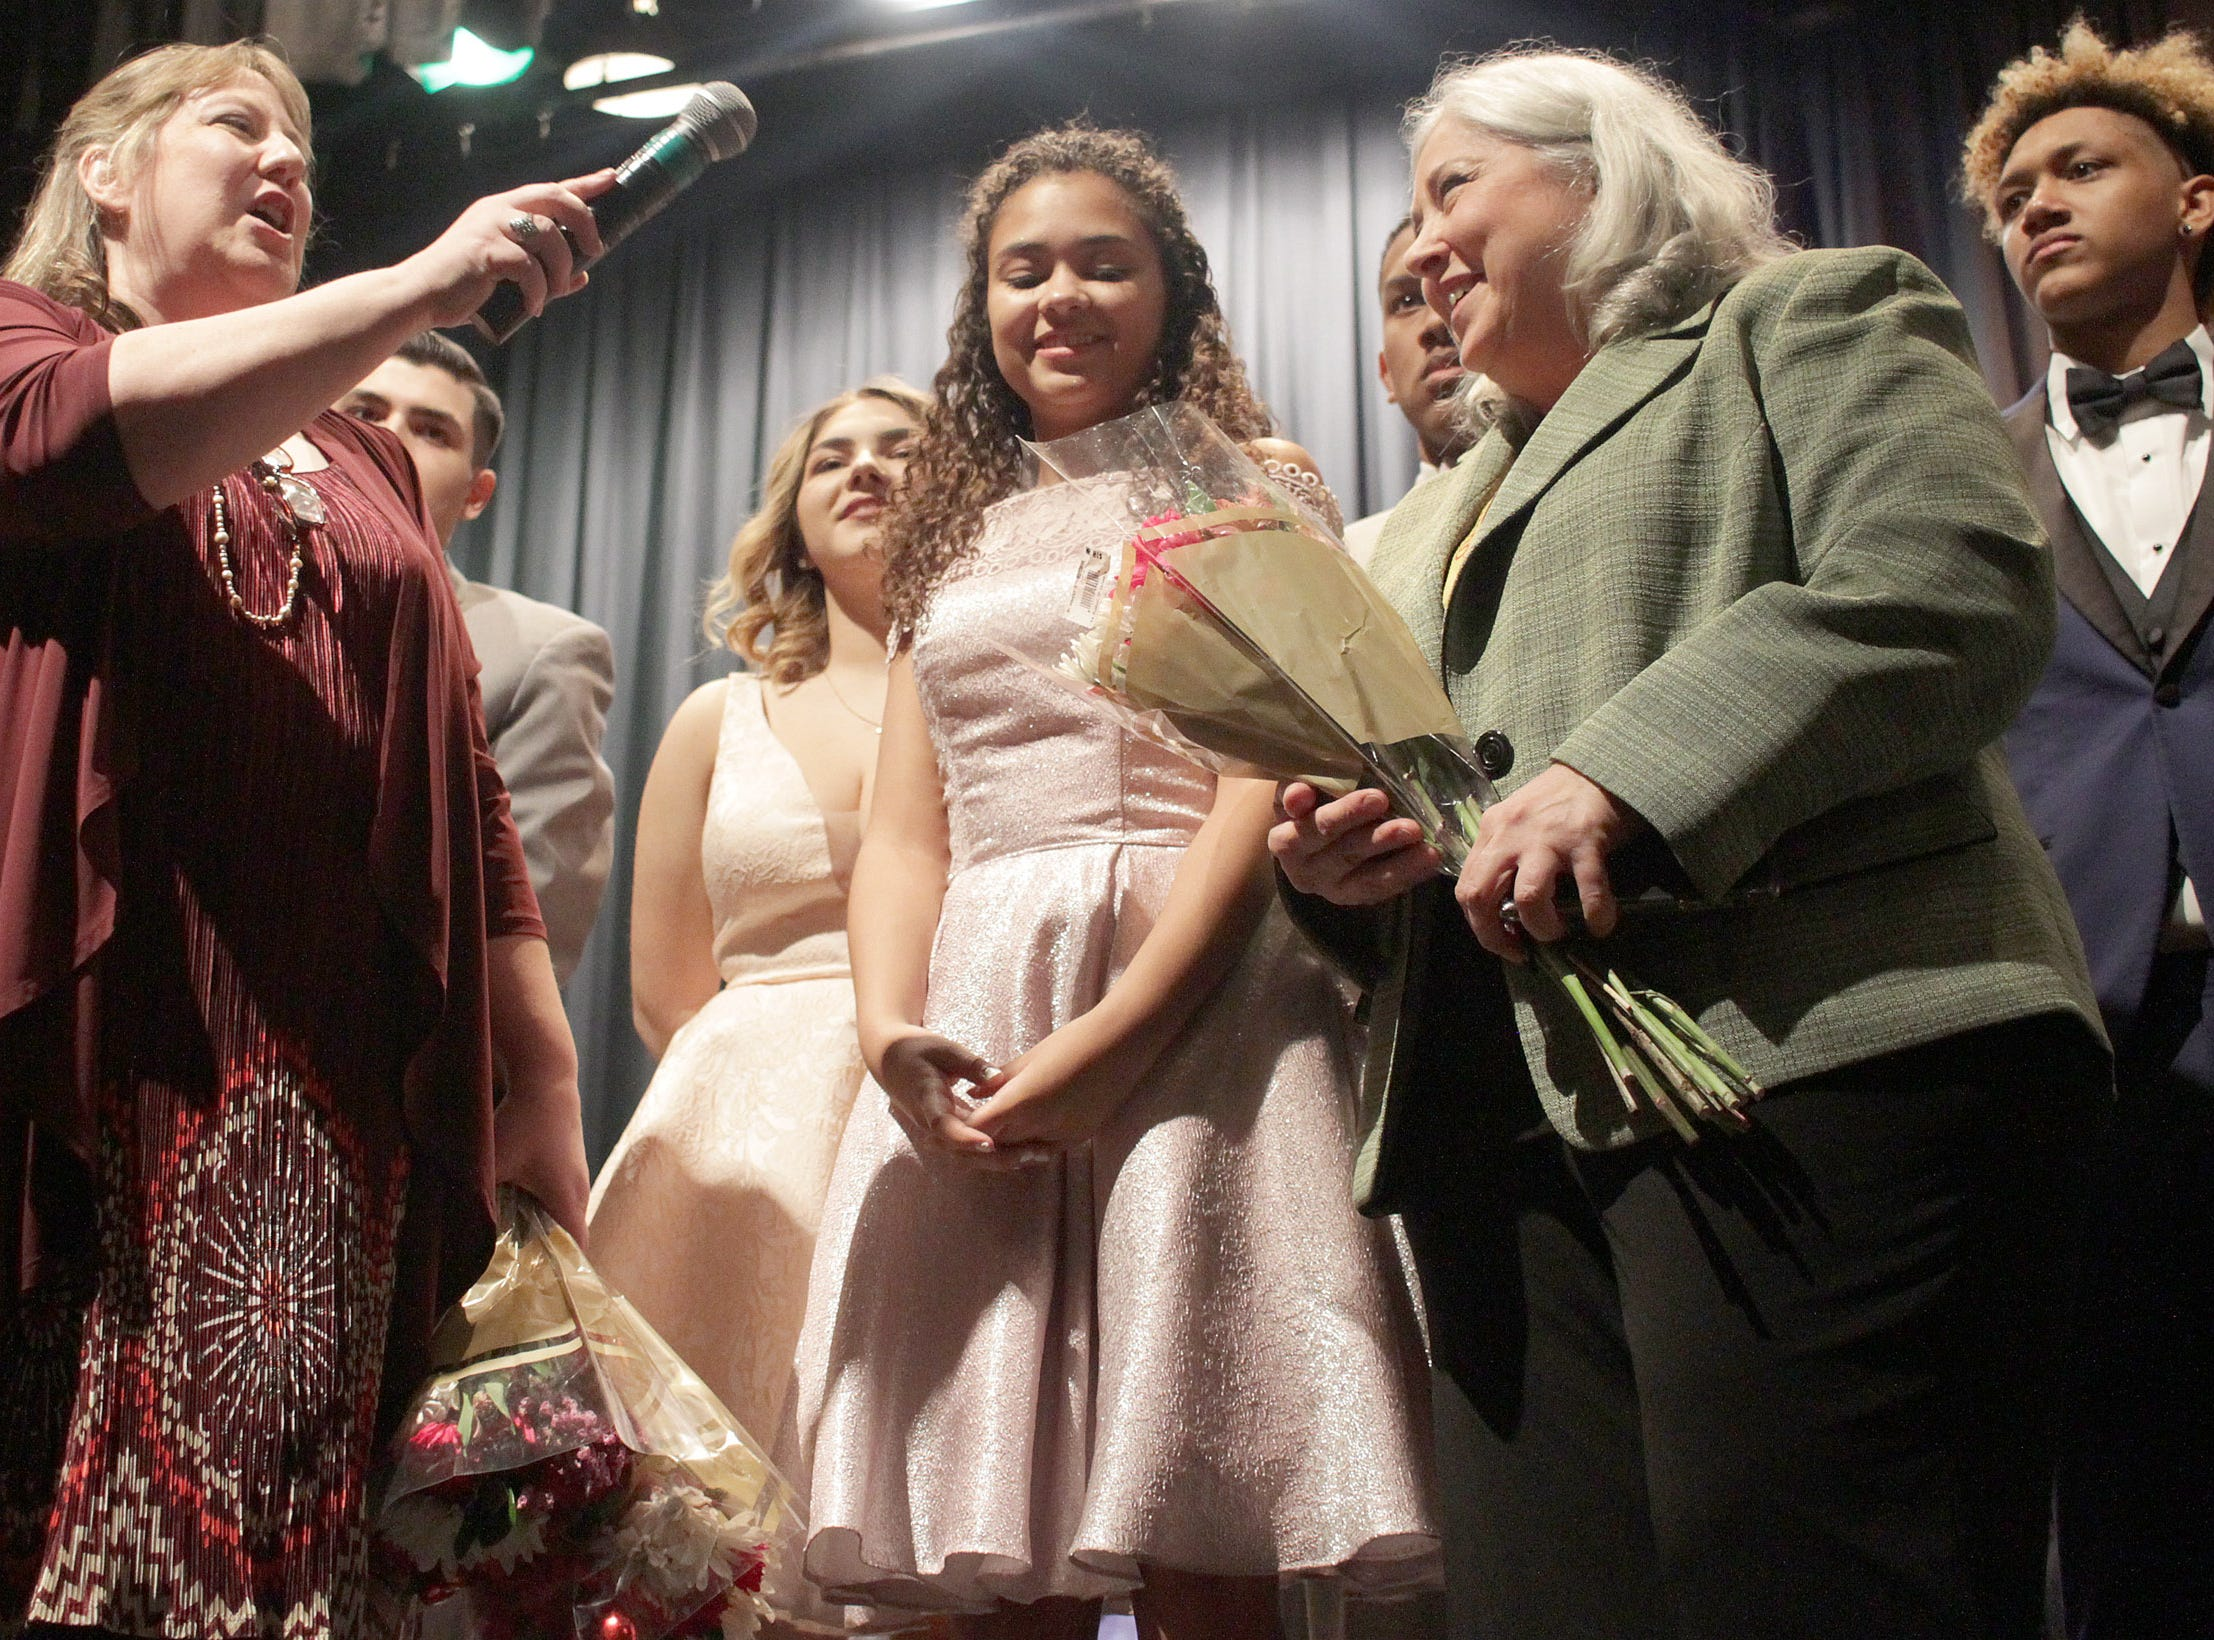 Roses are passed out at the end of Gallatin High's Annual Prom Show on Saturday, February 2, 2019.